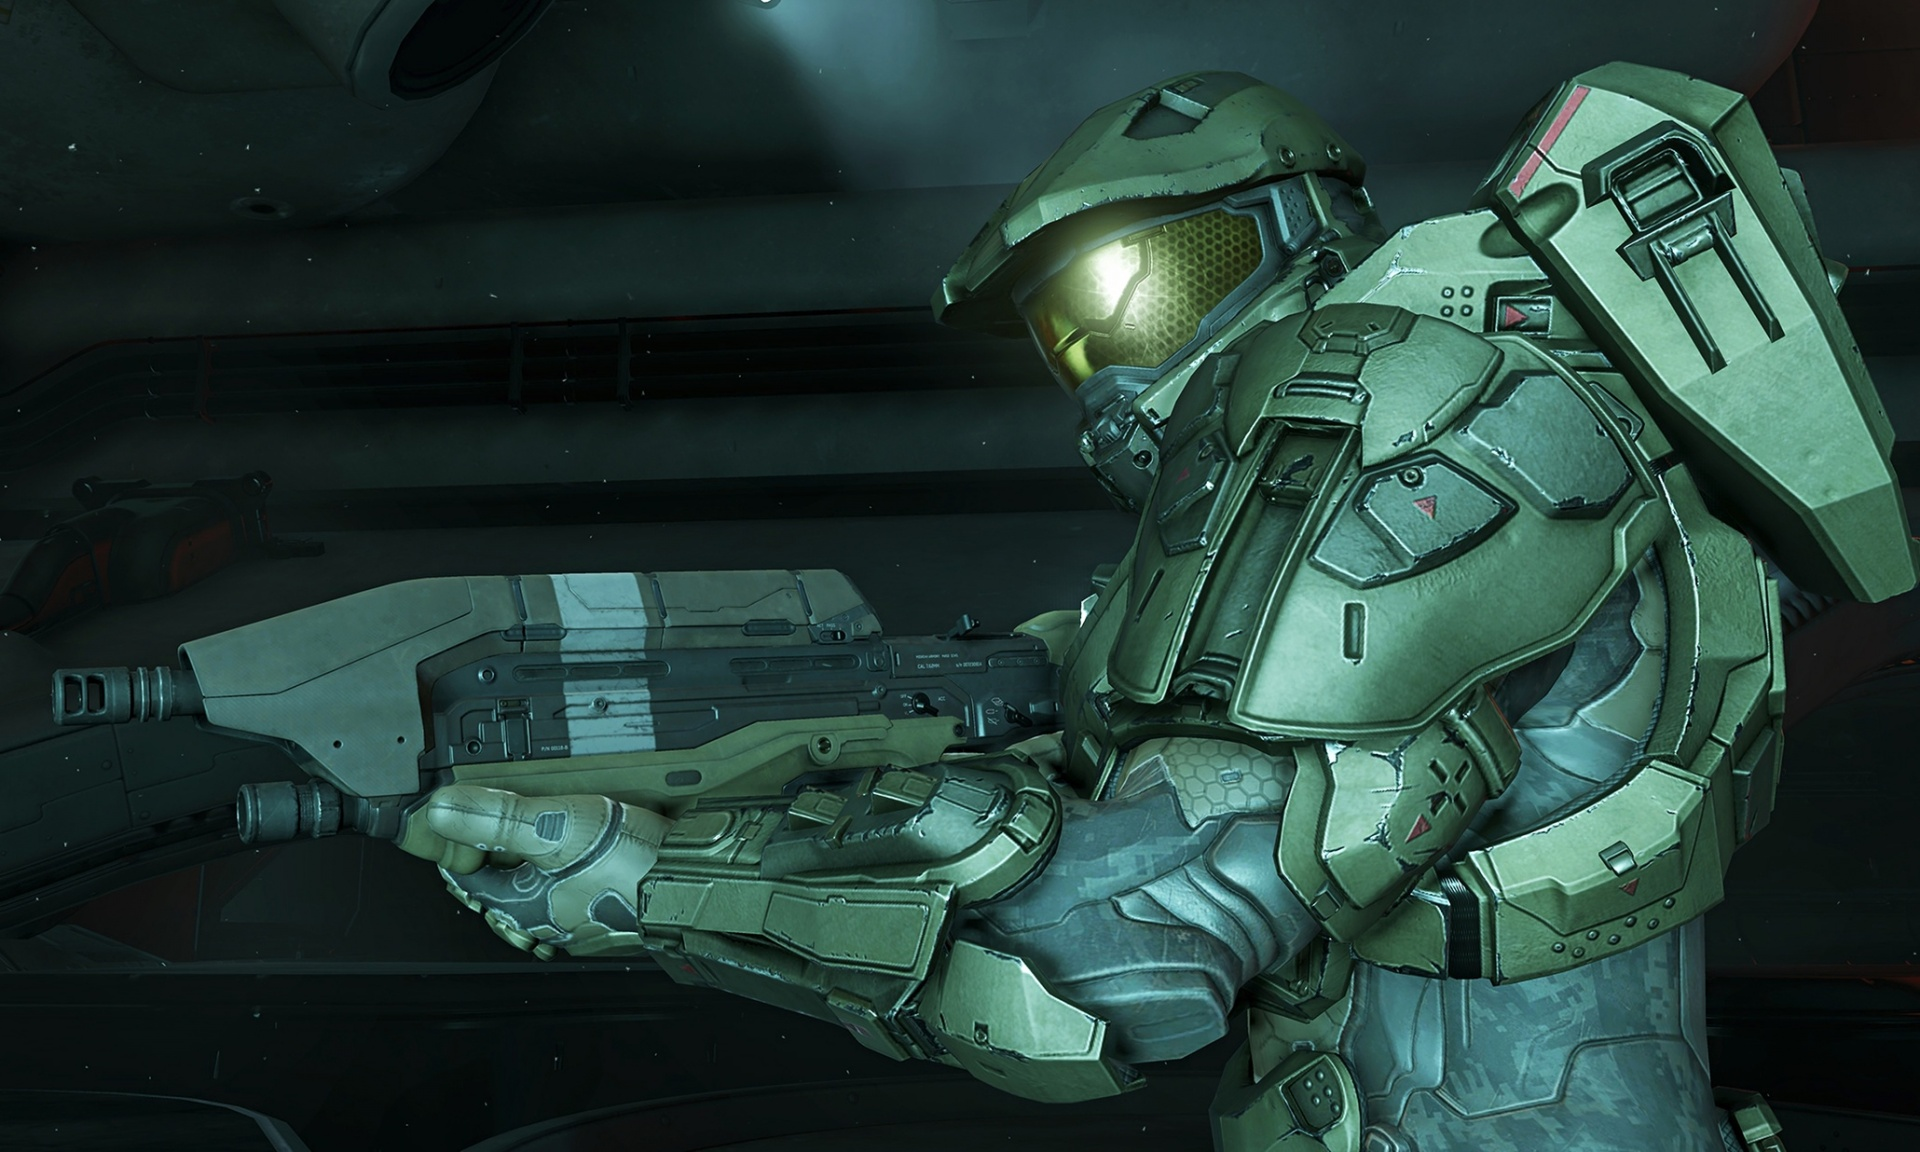 New Halo 5 character, campaign and multiplayer details revealed, including a ghost (update)